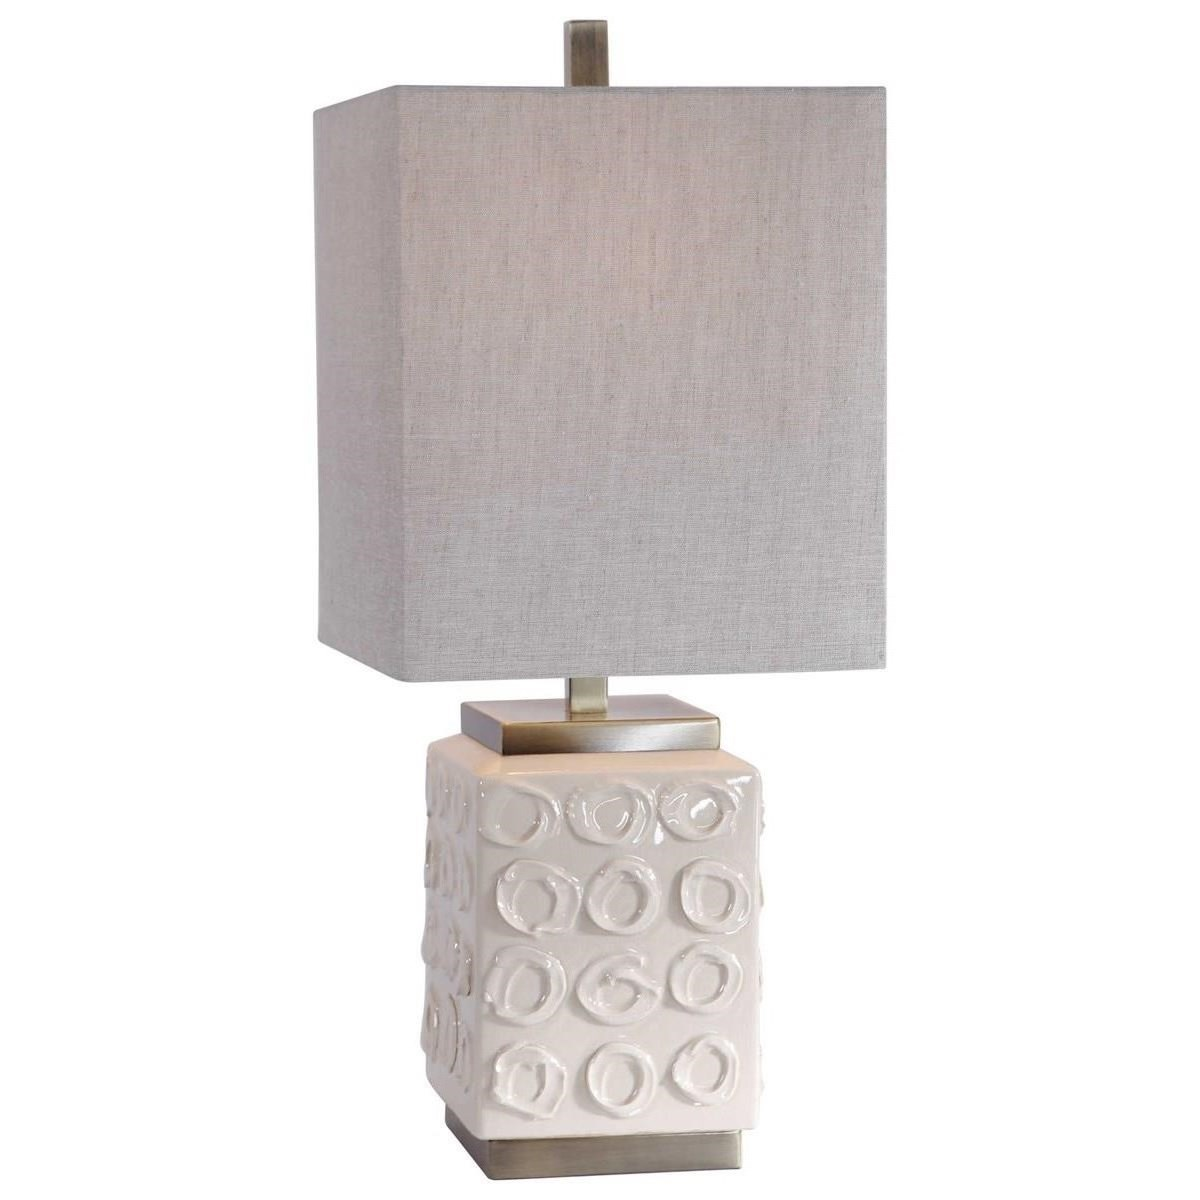 Accent Lamps Emeline White Accent Lamp by Uttermost at Dunk & Bright Furniture